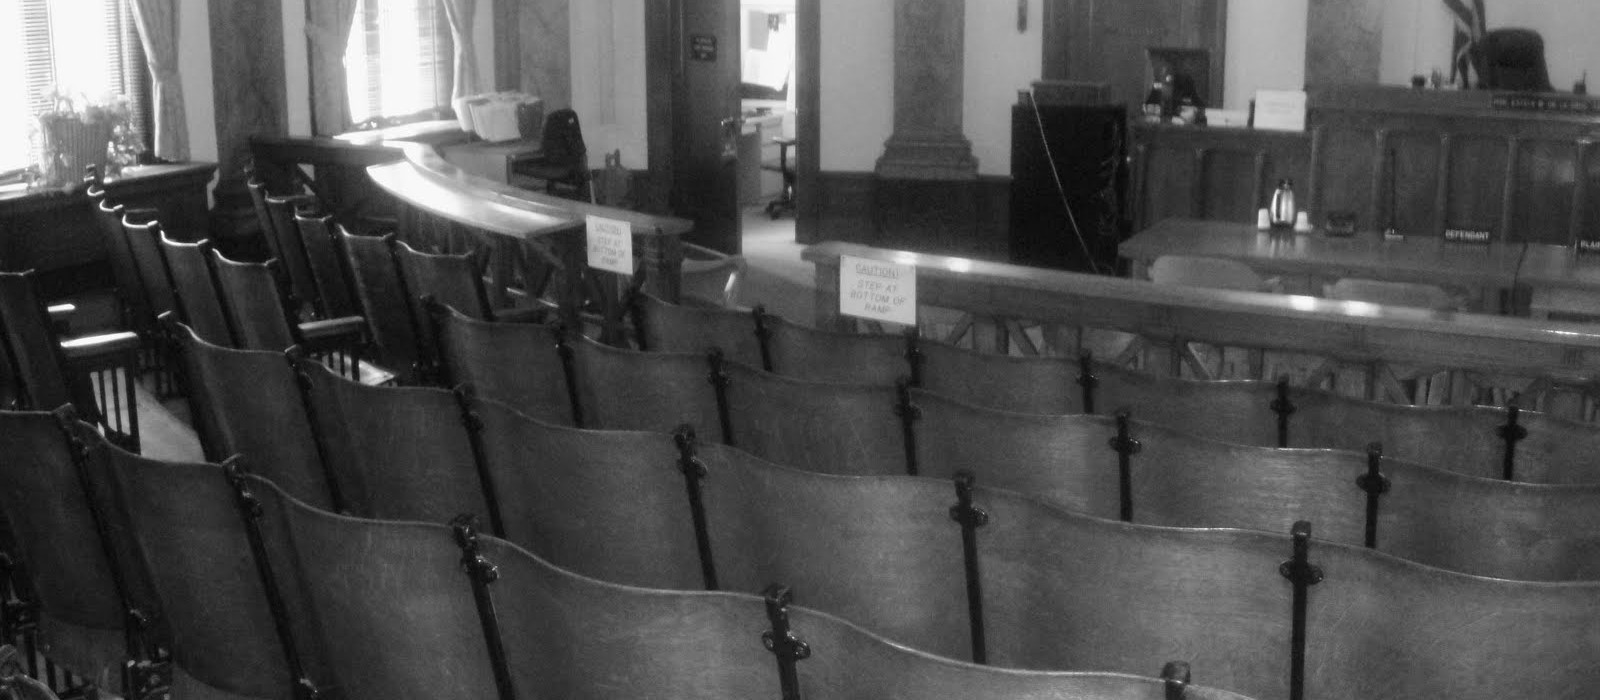 chairs in a court room